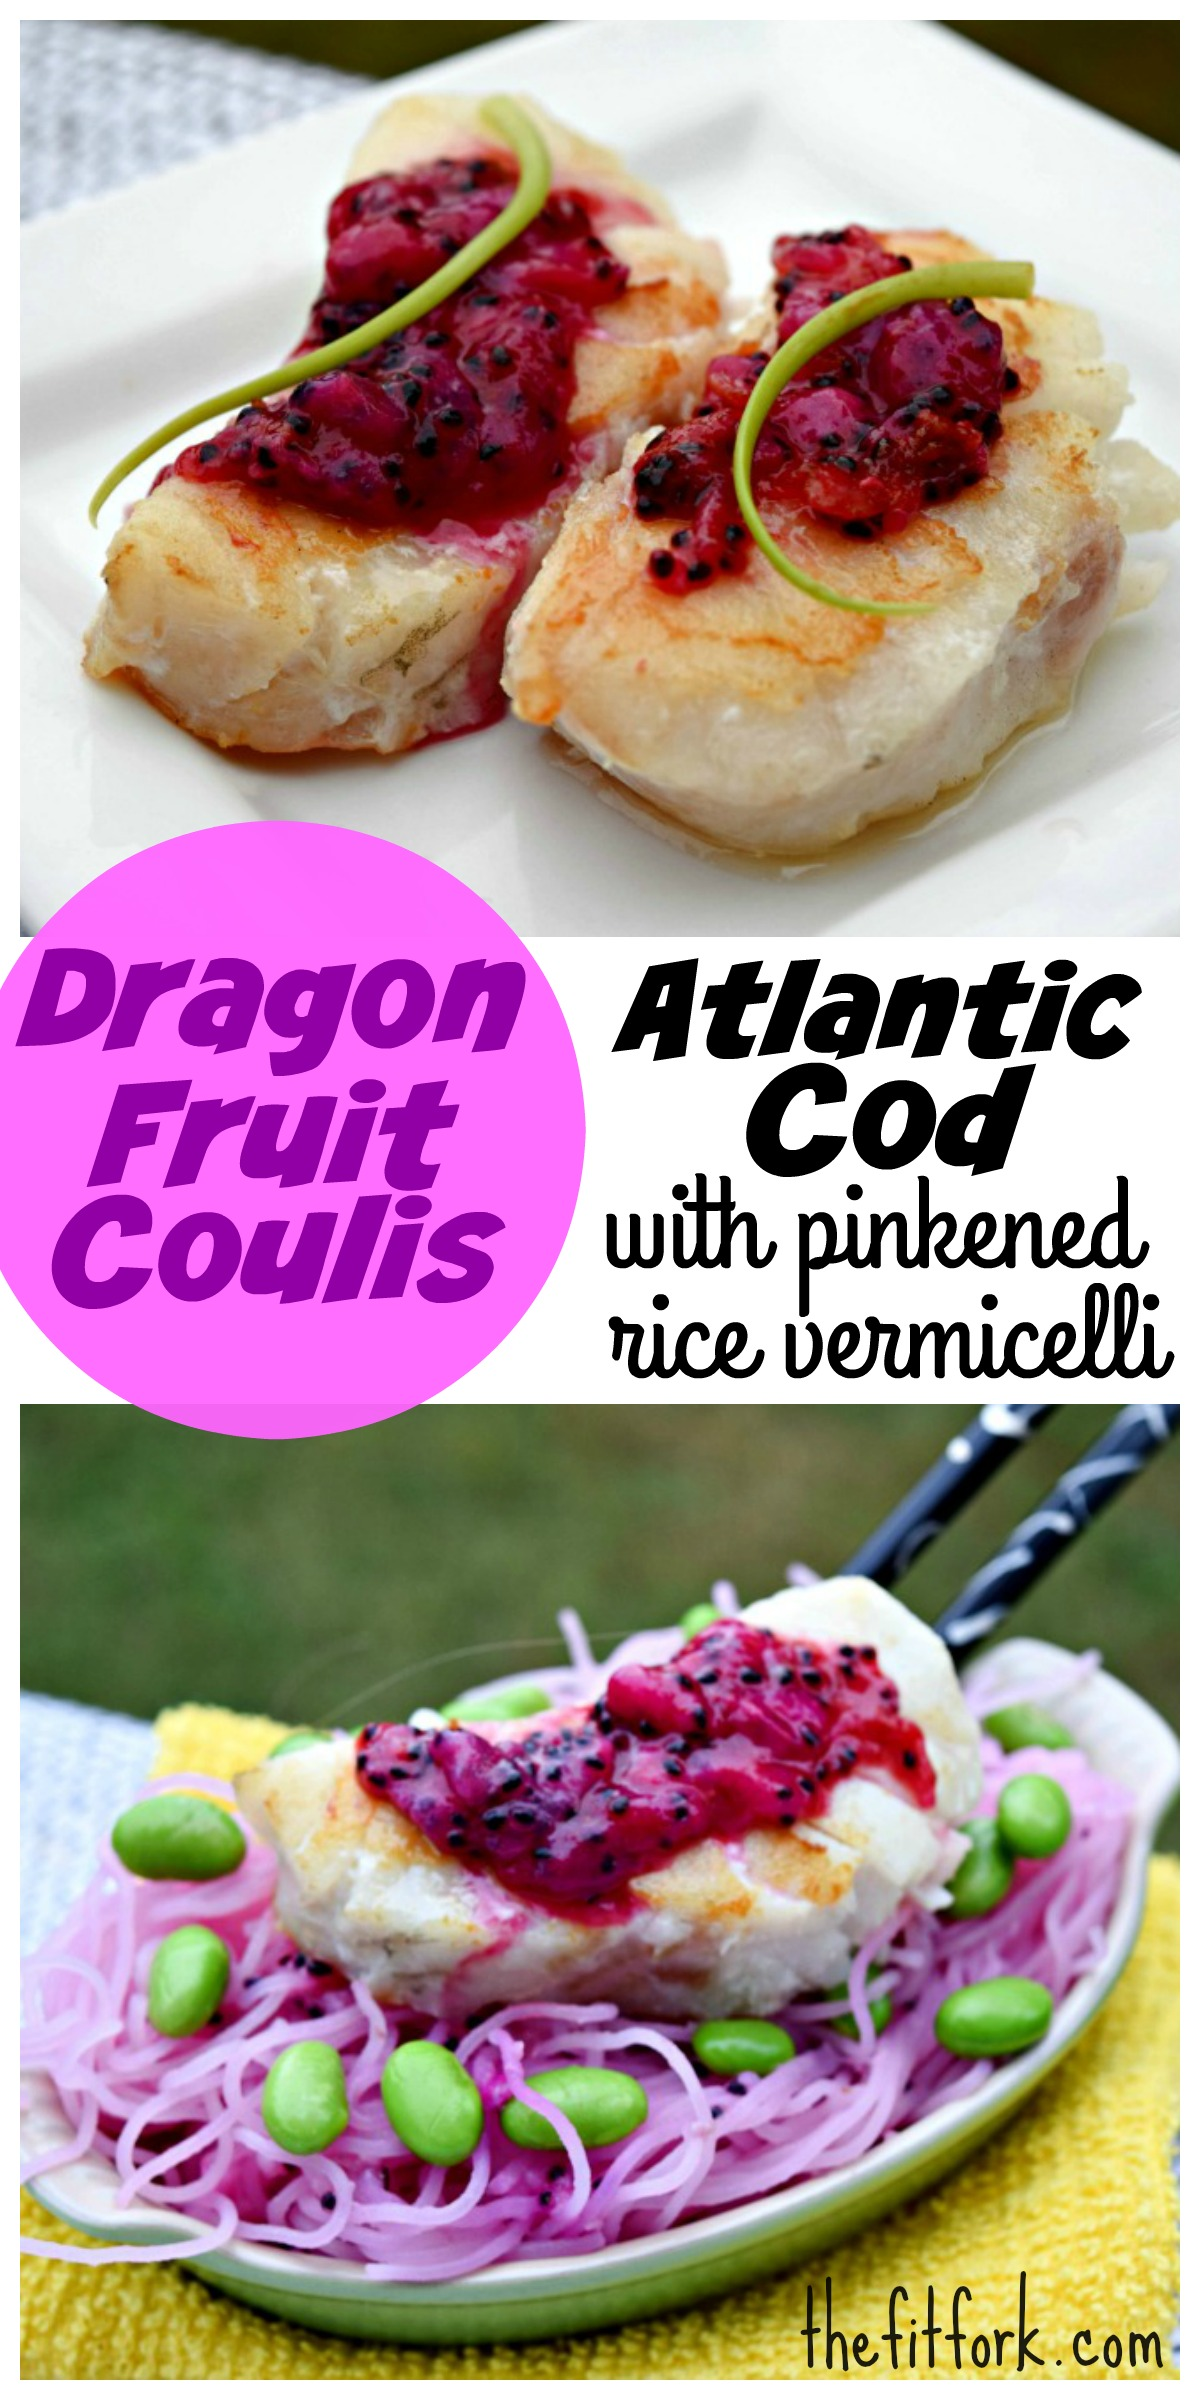 Dragon fruit coulis fish with pink rice vermecilli for Fruit coulis